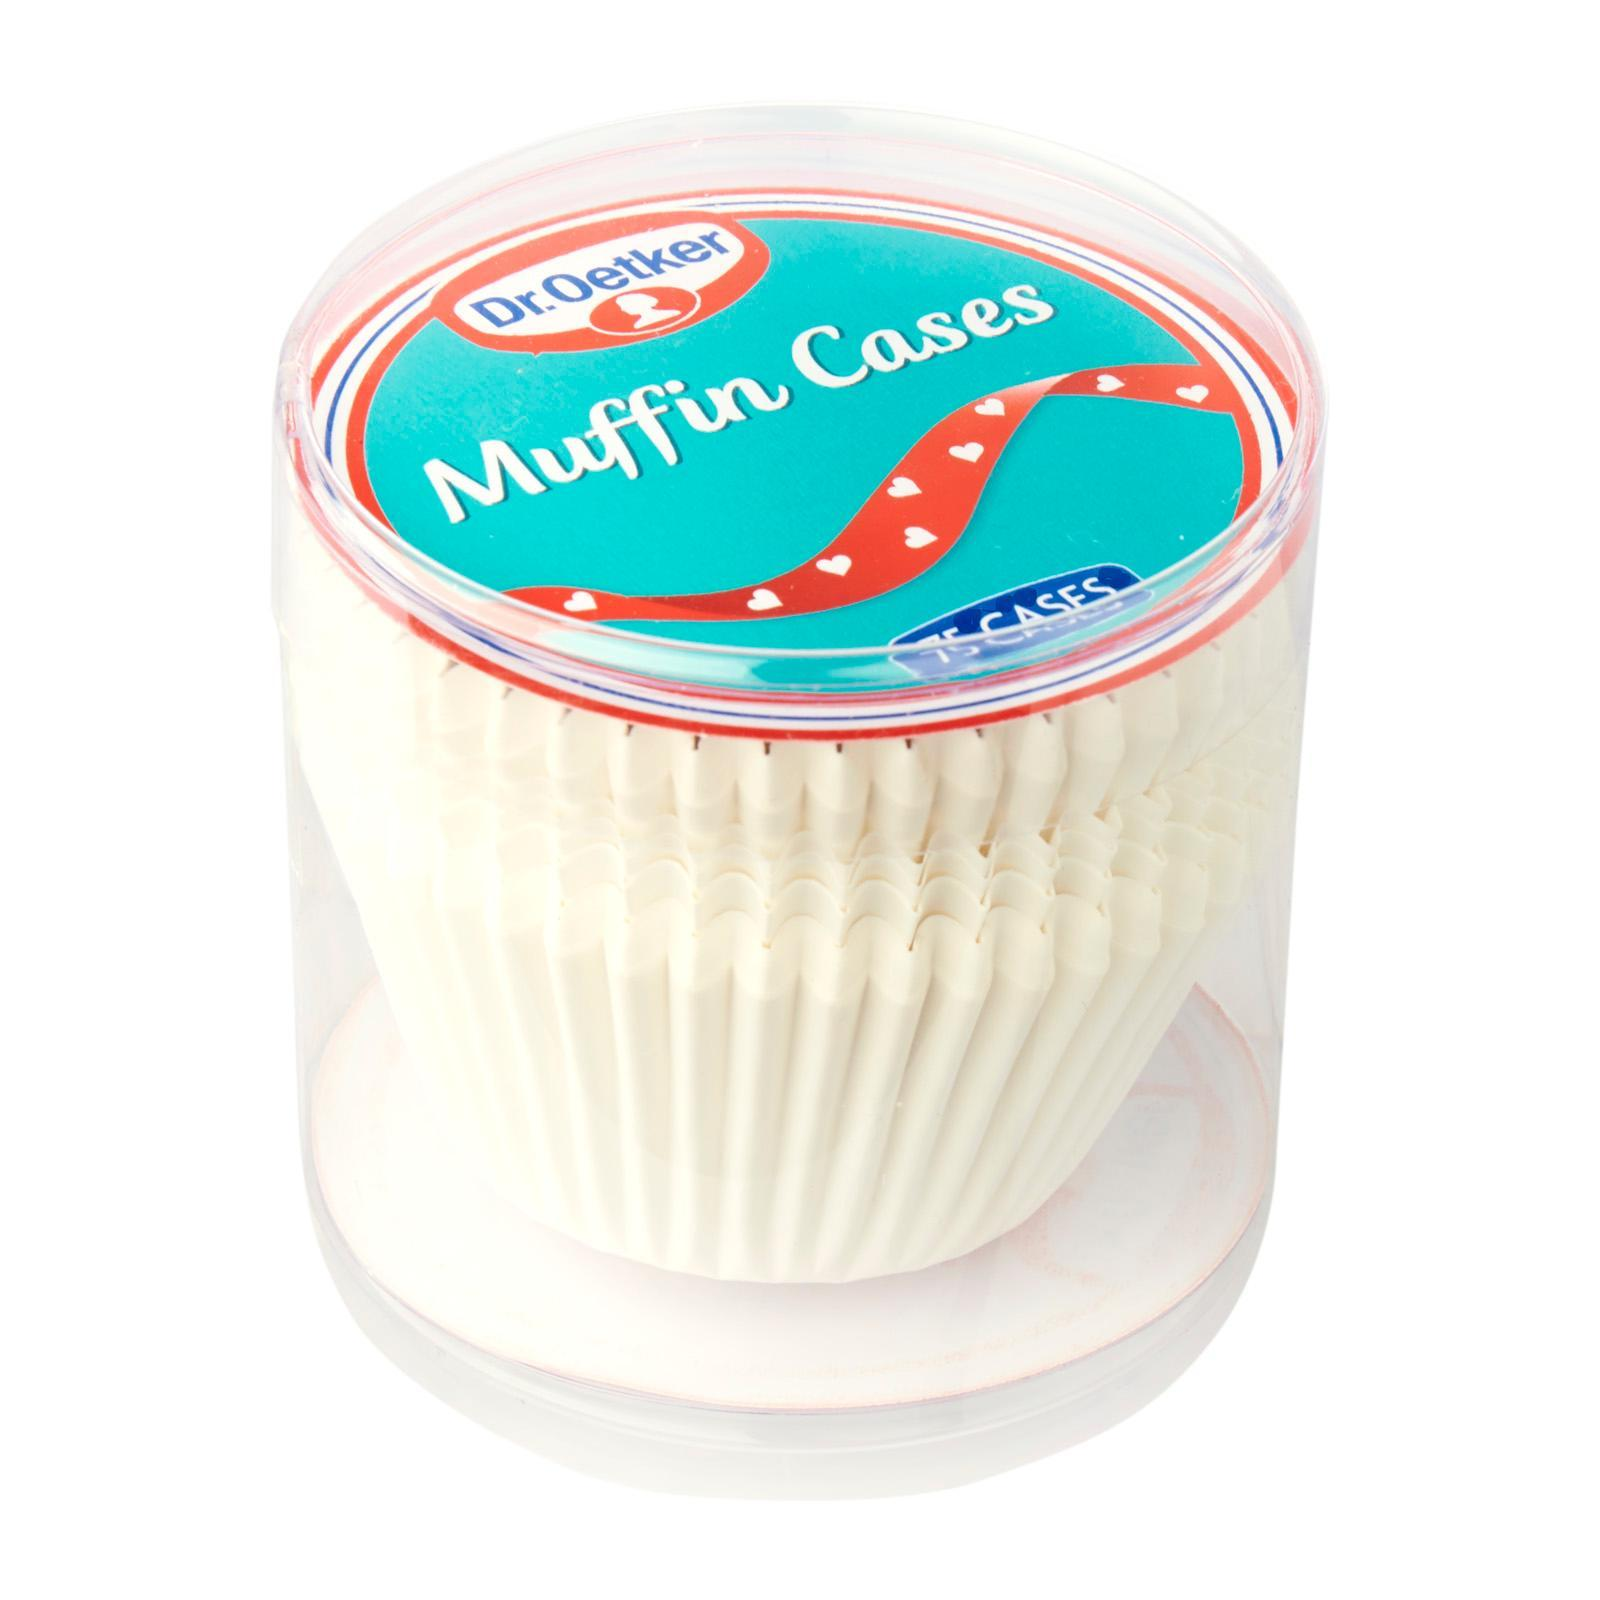 Dr. Oetker Muffin Cases